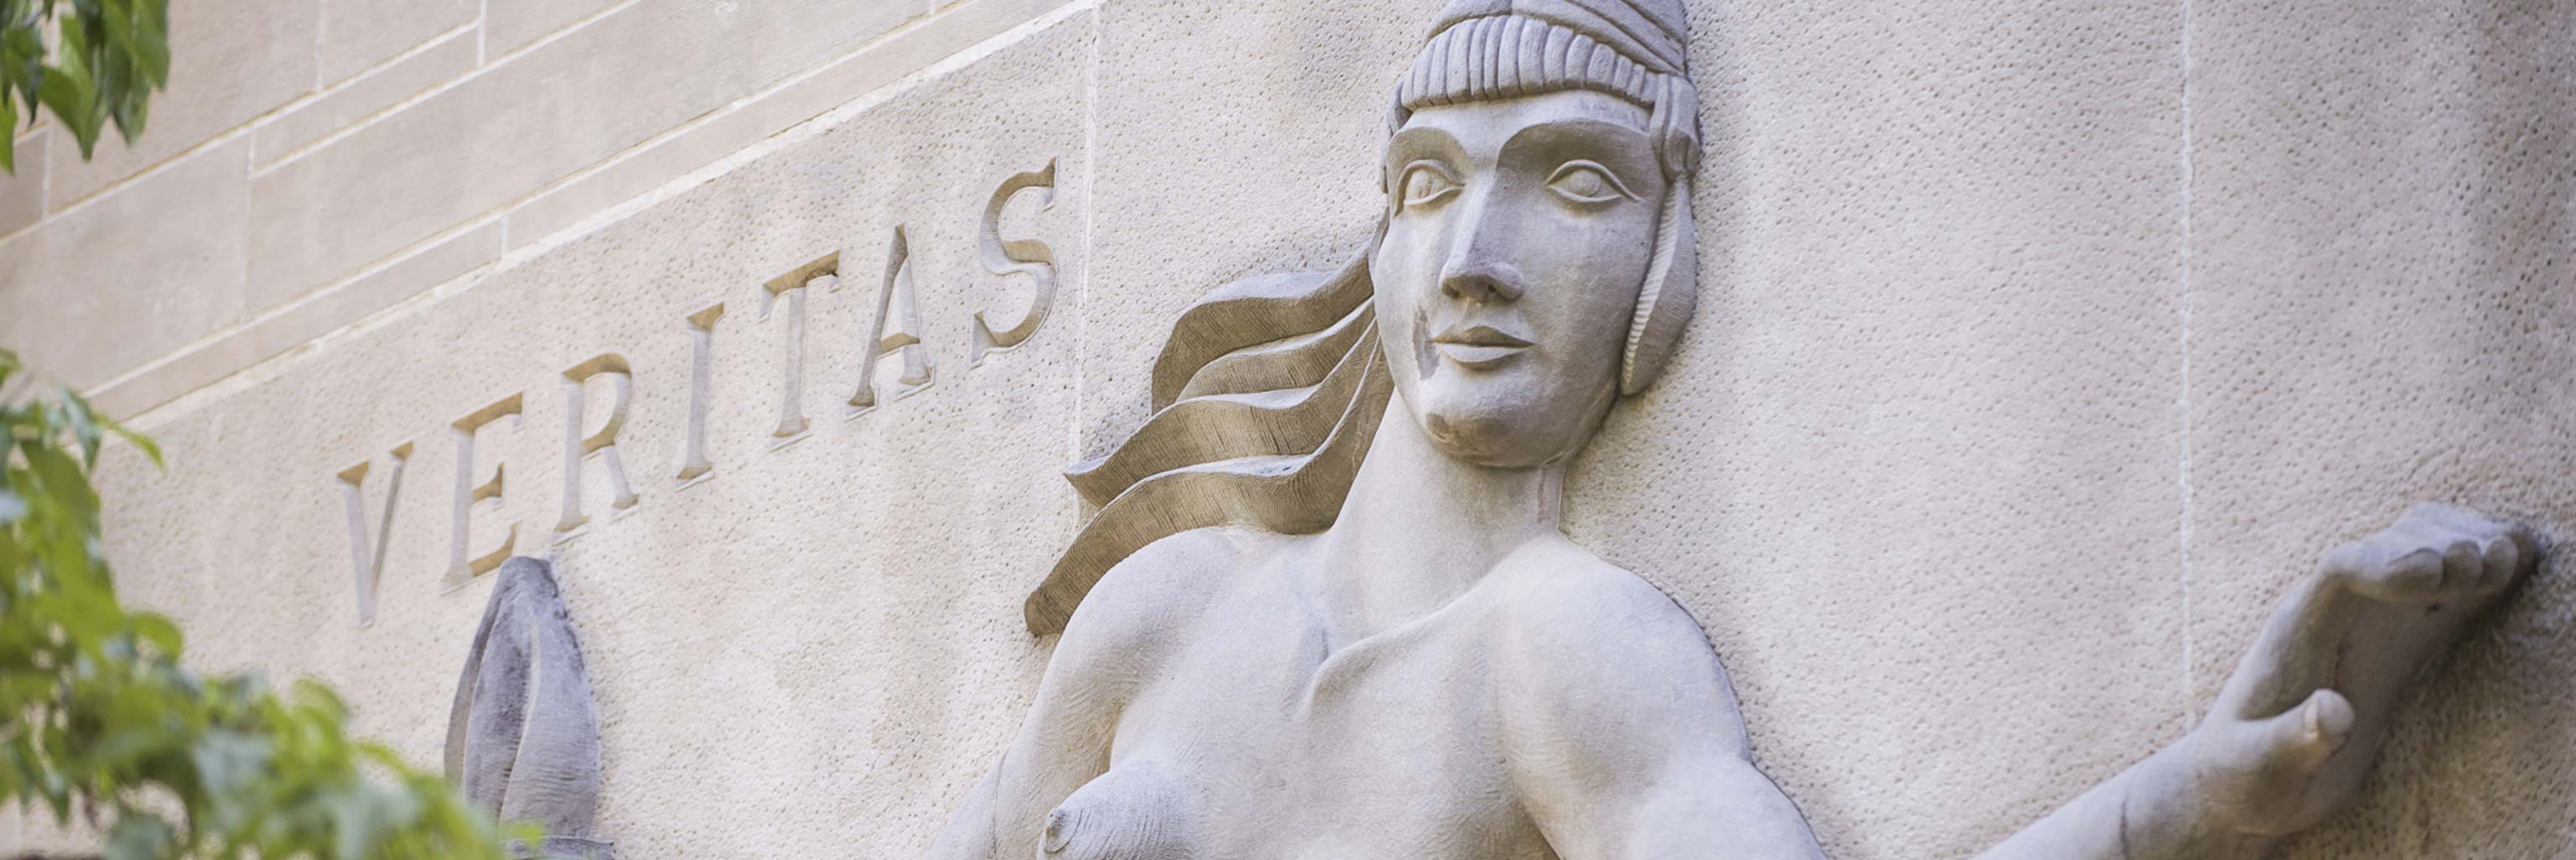 Sculpture of a woman in the side of a building